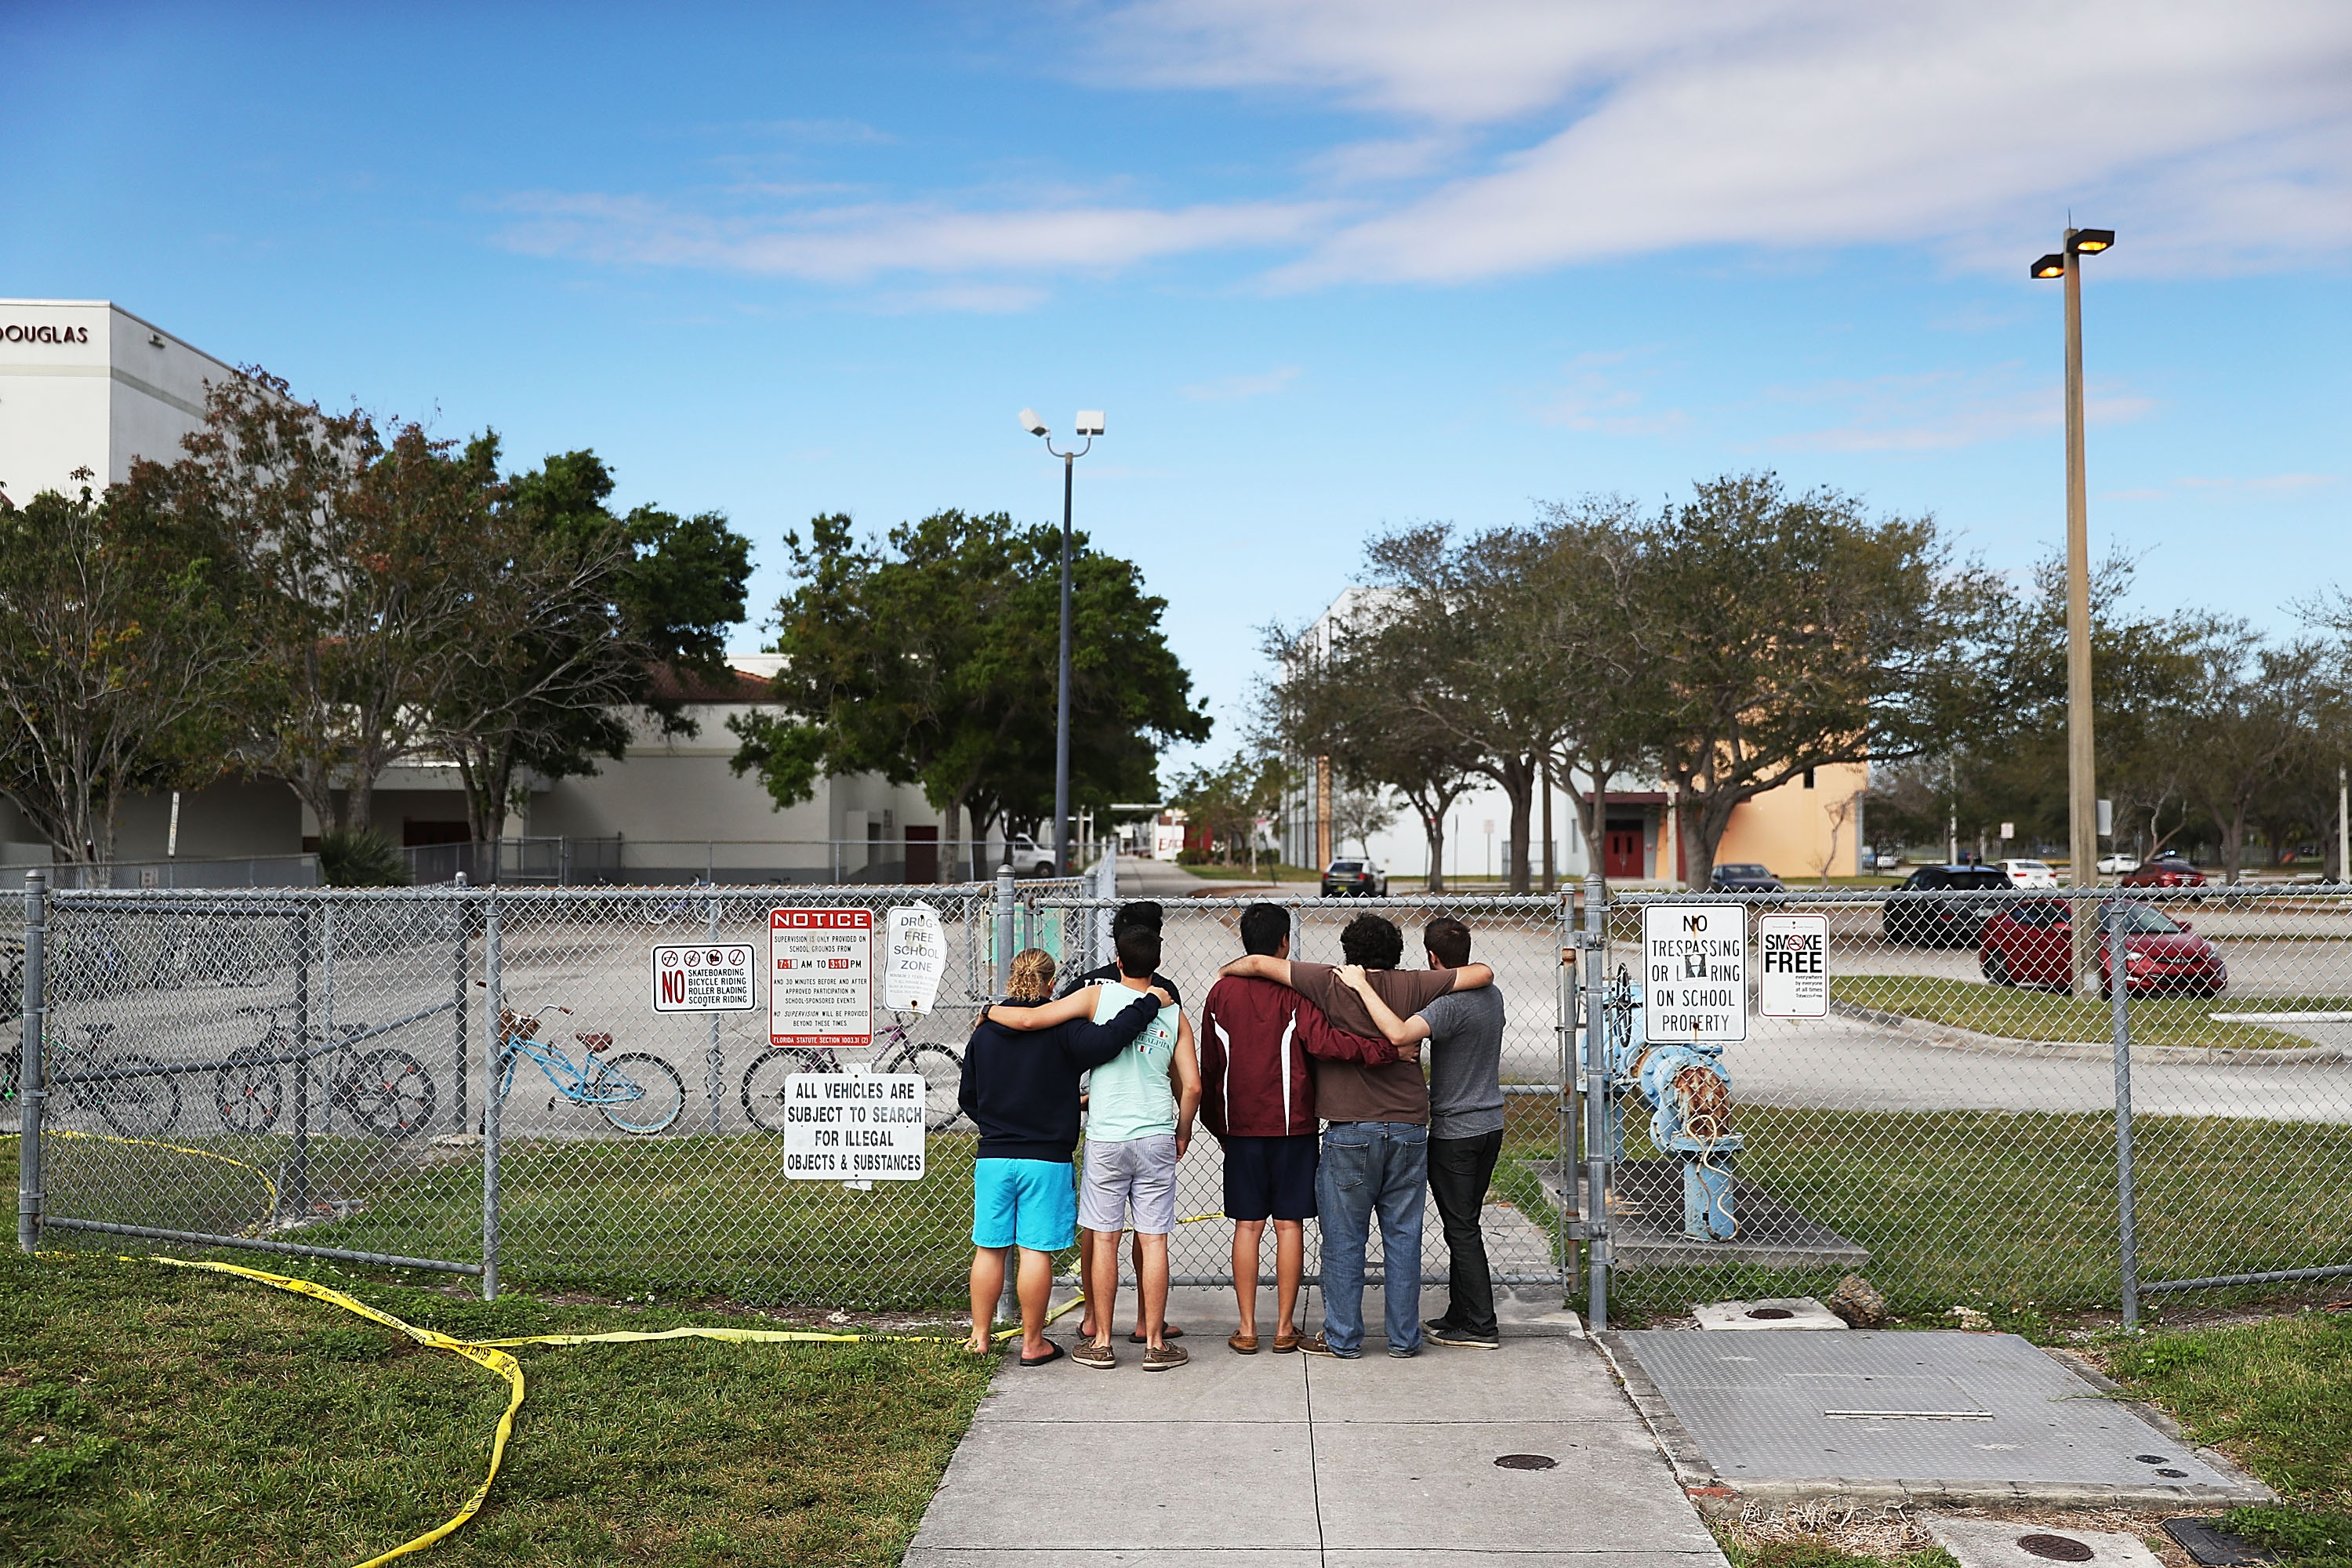 Students are rising up against gun violence in the aftermath of the Florida shooting